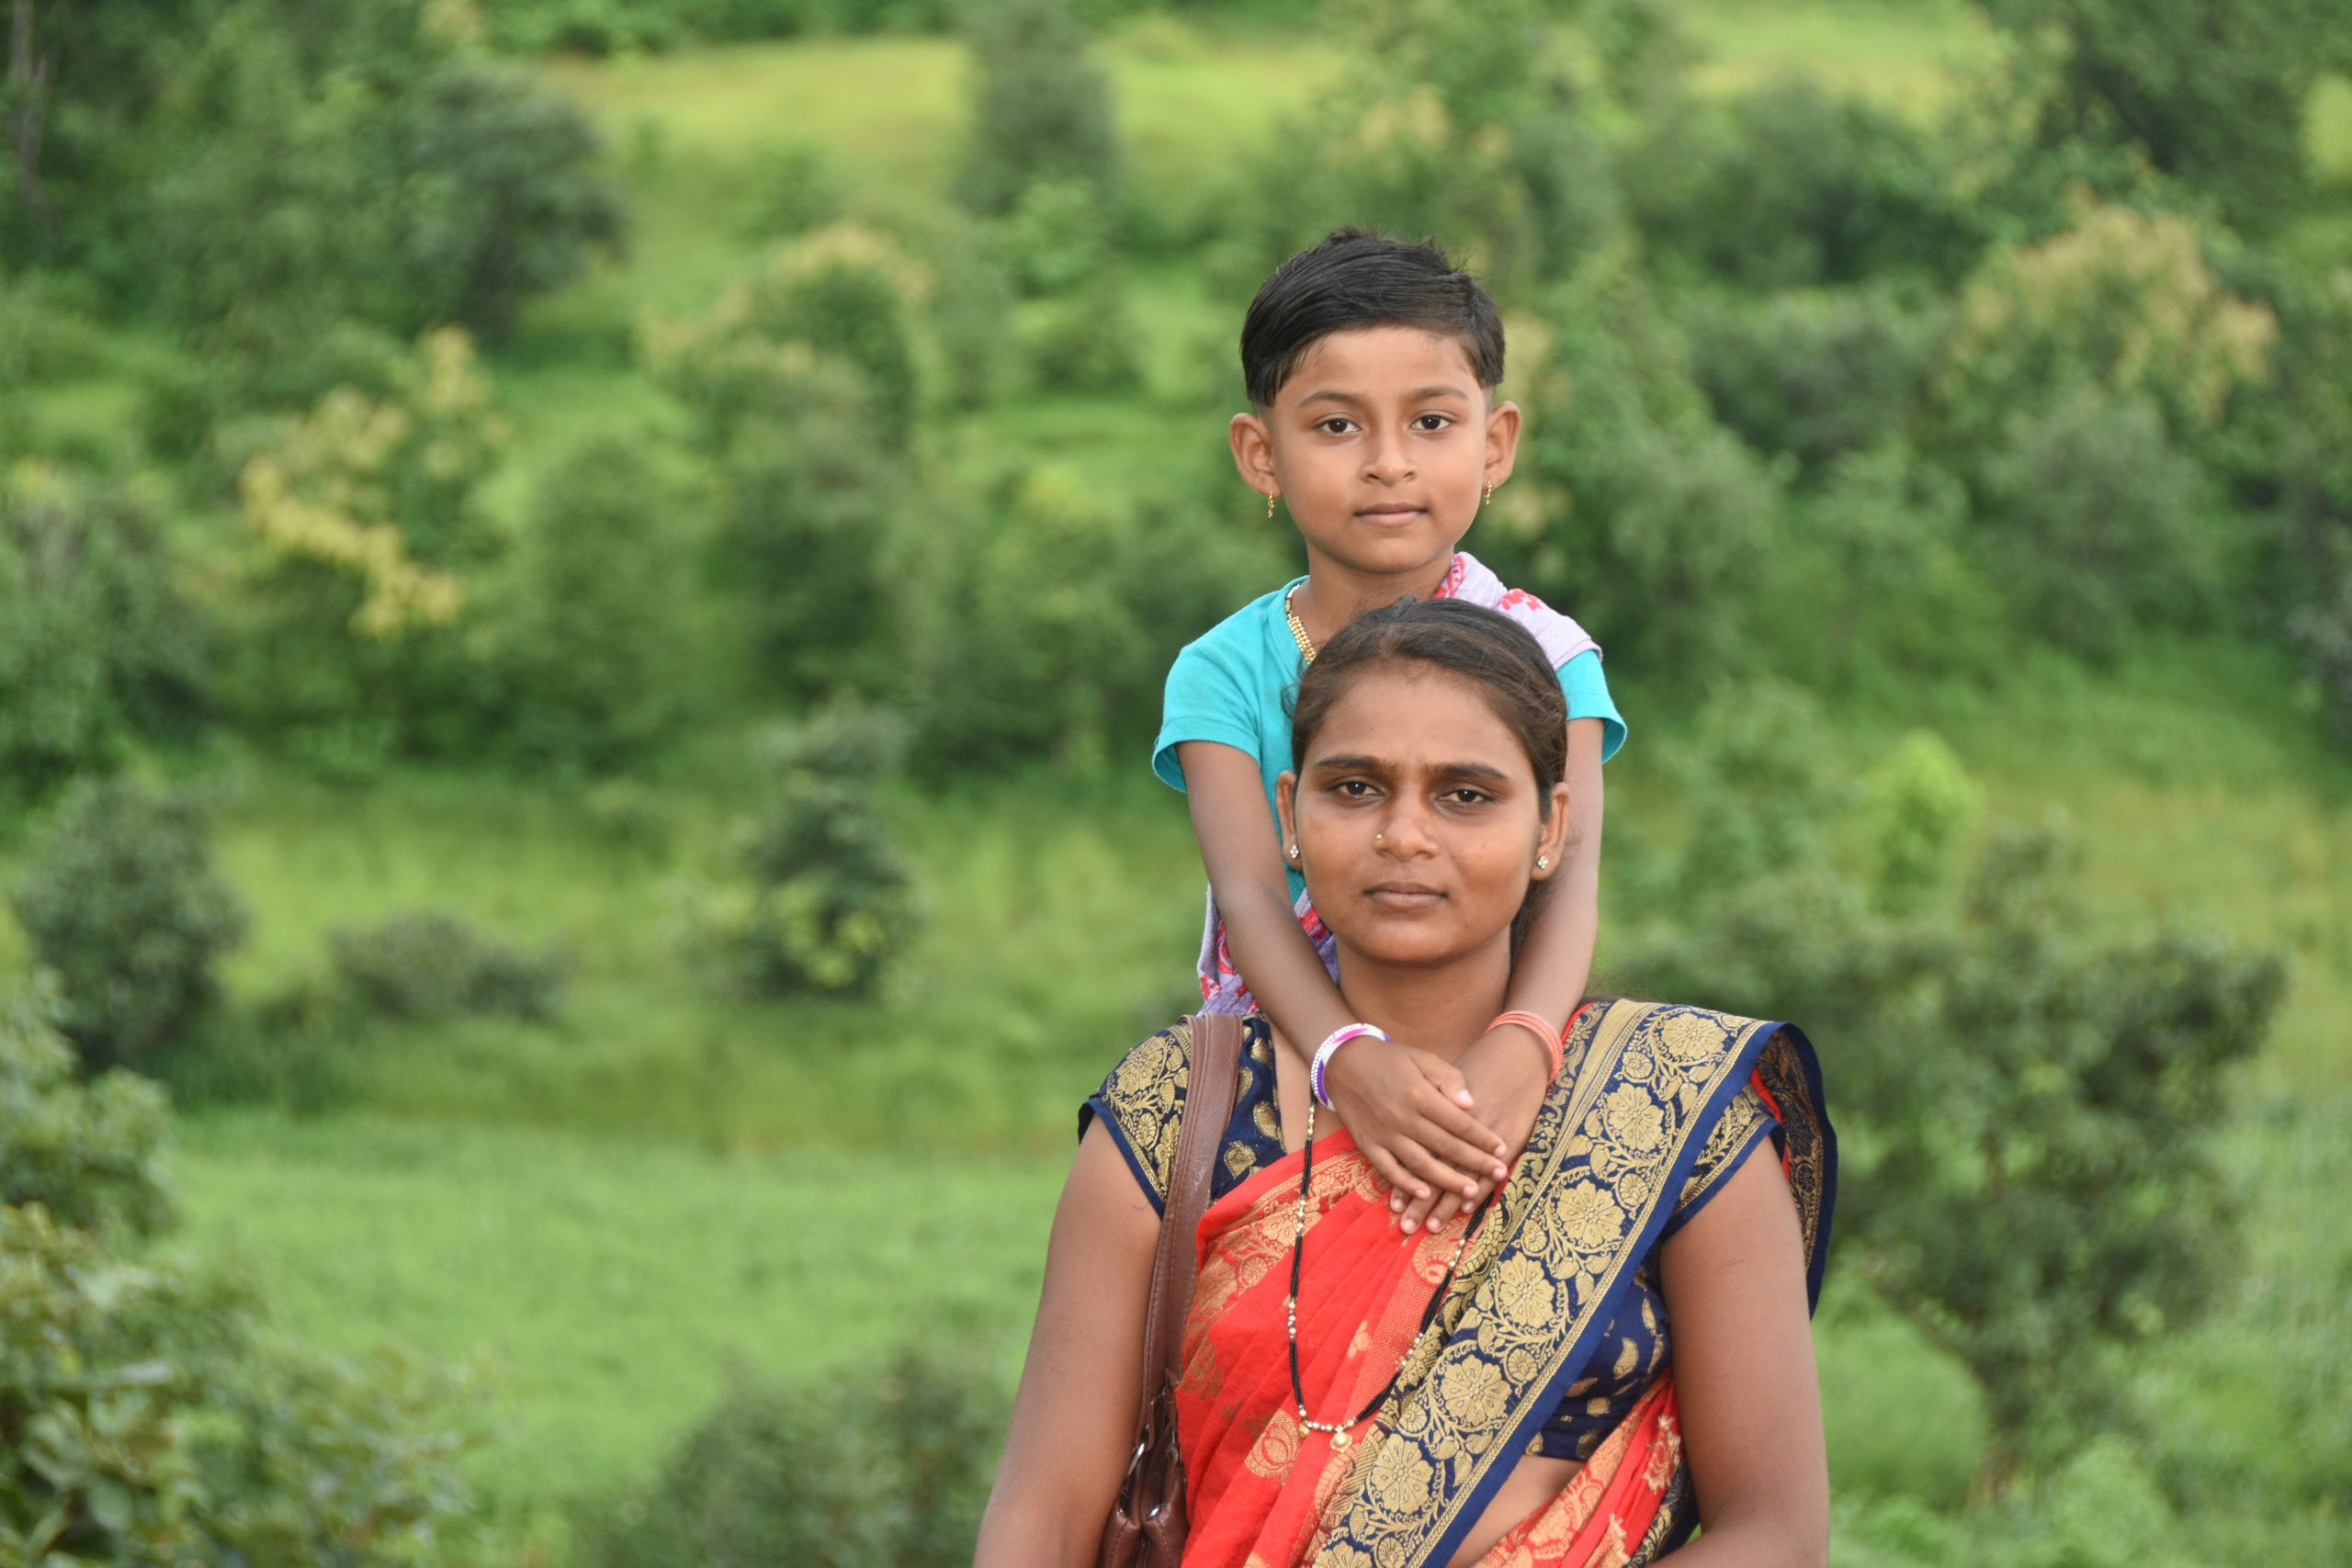 A woman with her son